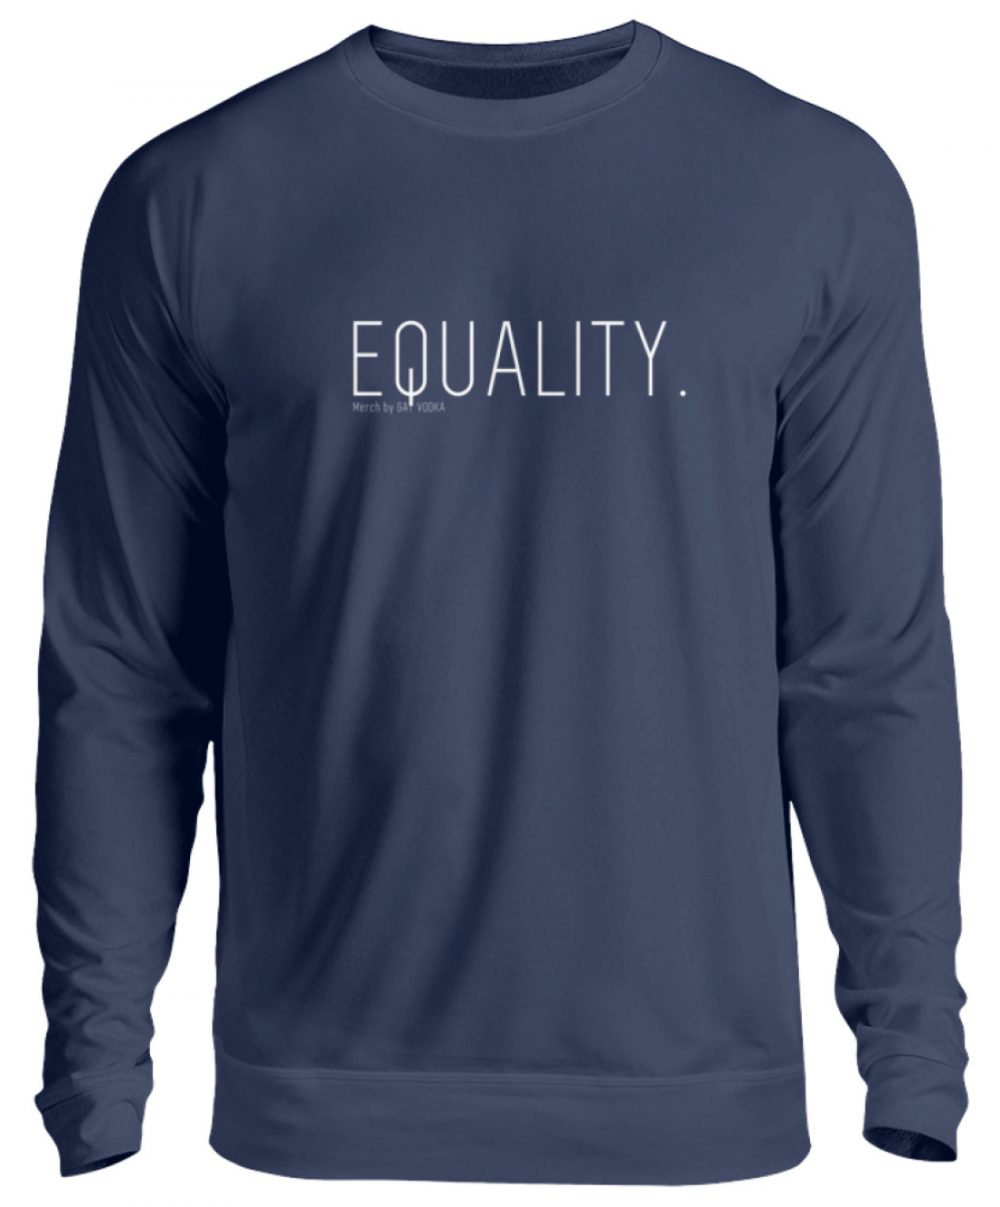 EQUALITY. - Unisex Pullover-1676